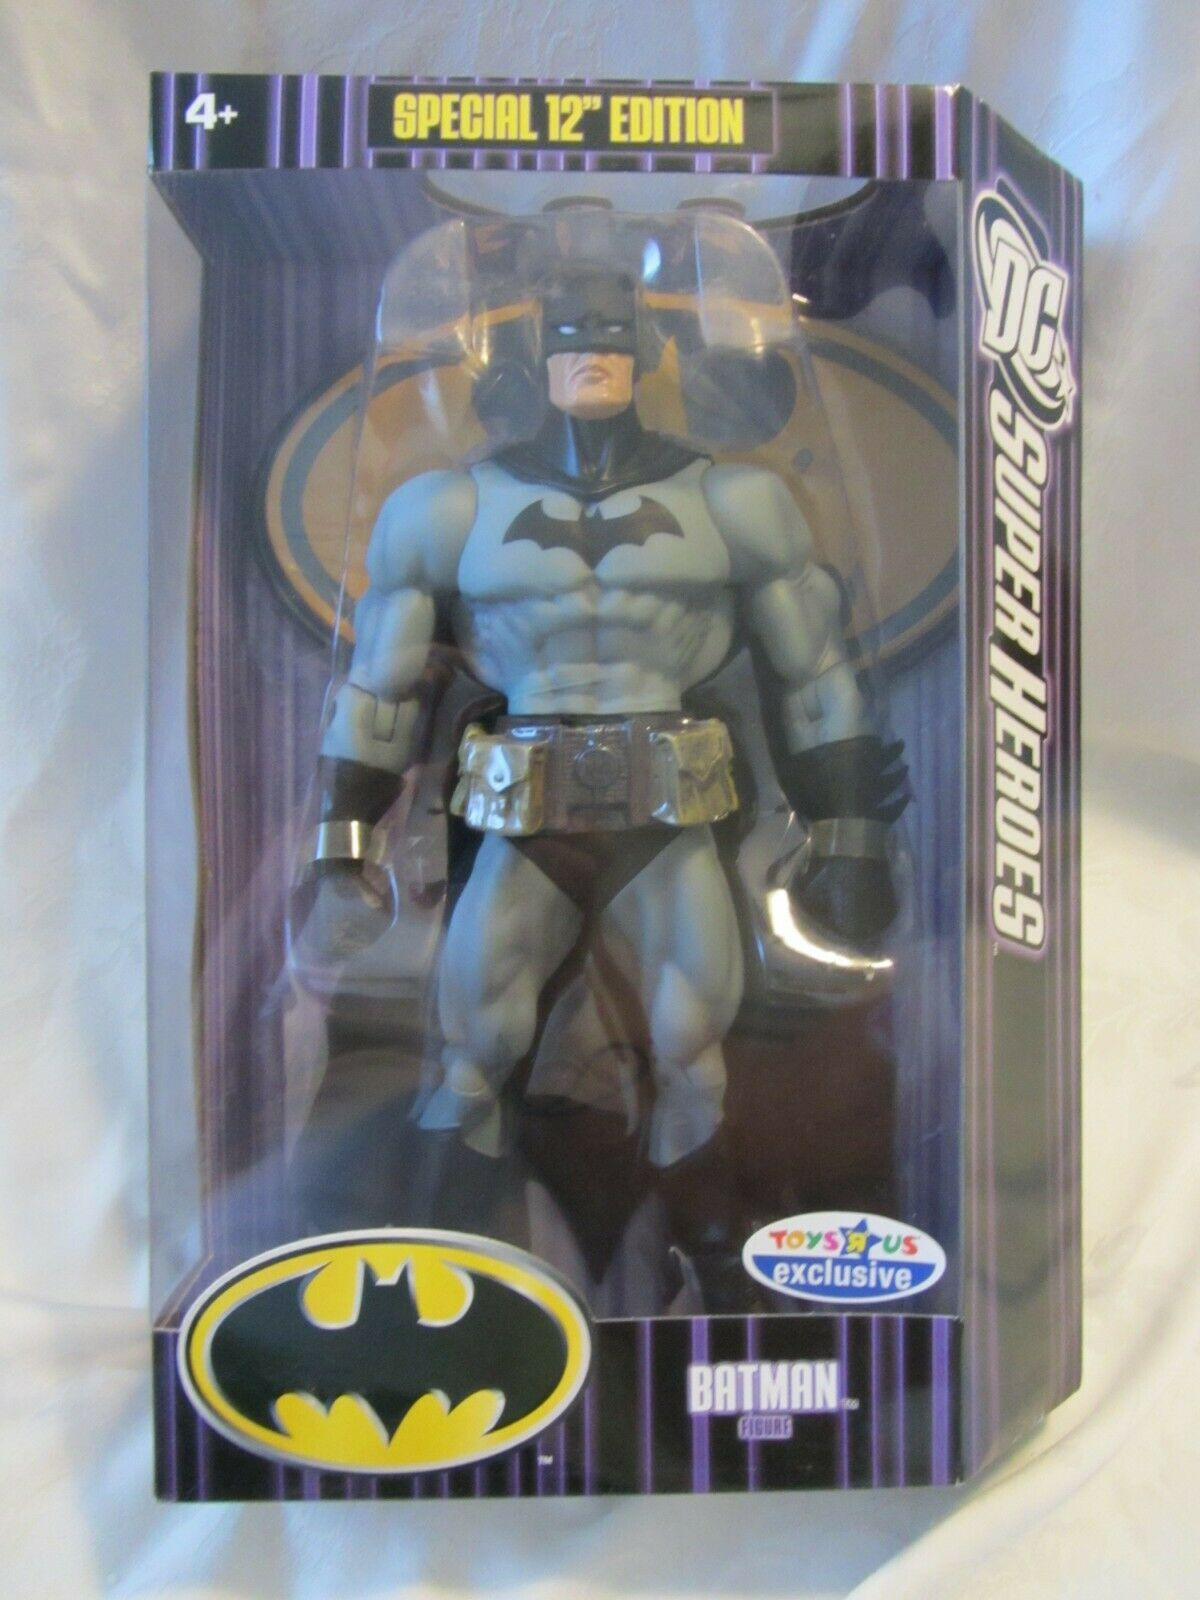 2007 MATTEL SPECIAL EDT 12 IN BATMAN TOYS R US EXCLUSIVE SEALED